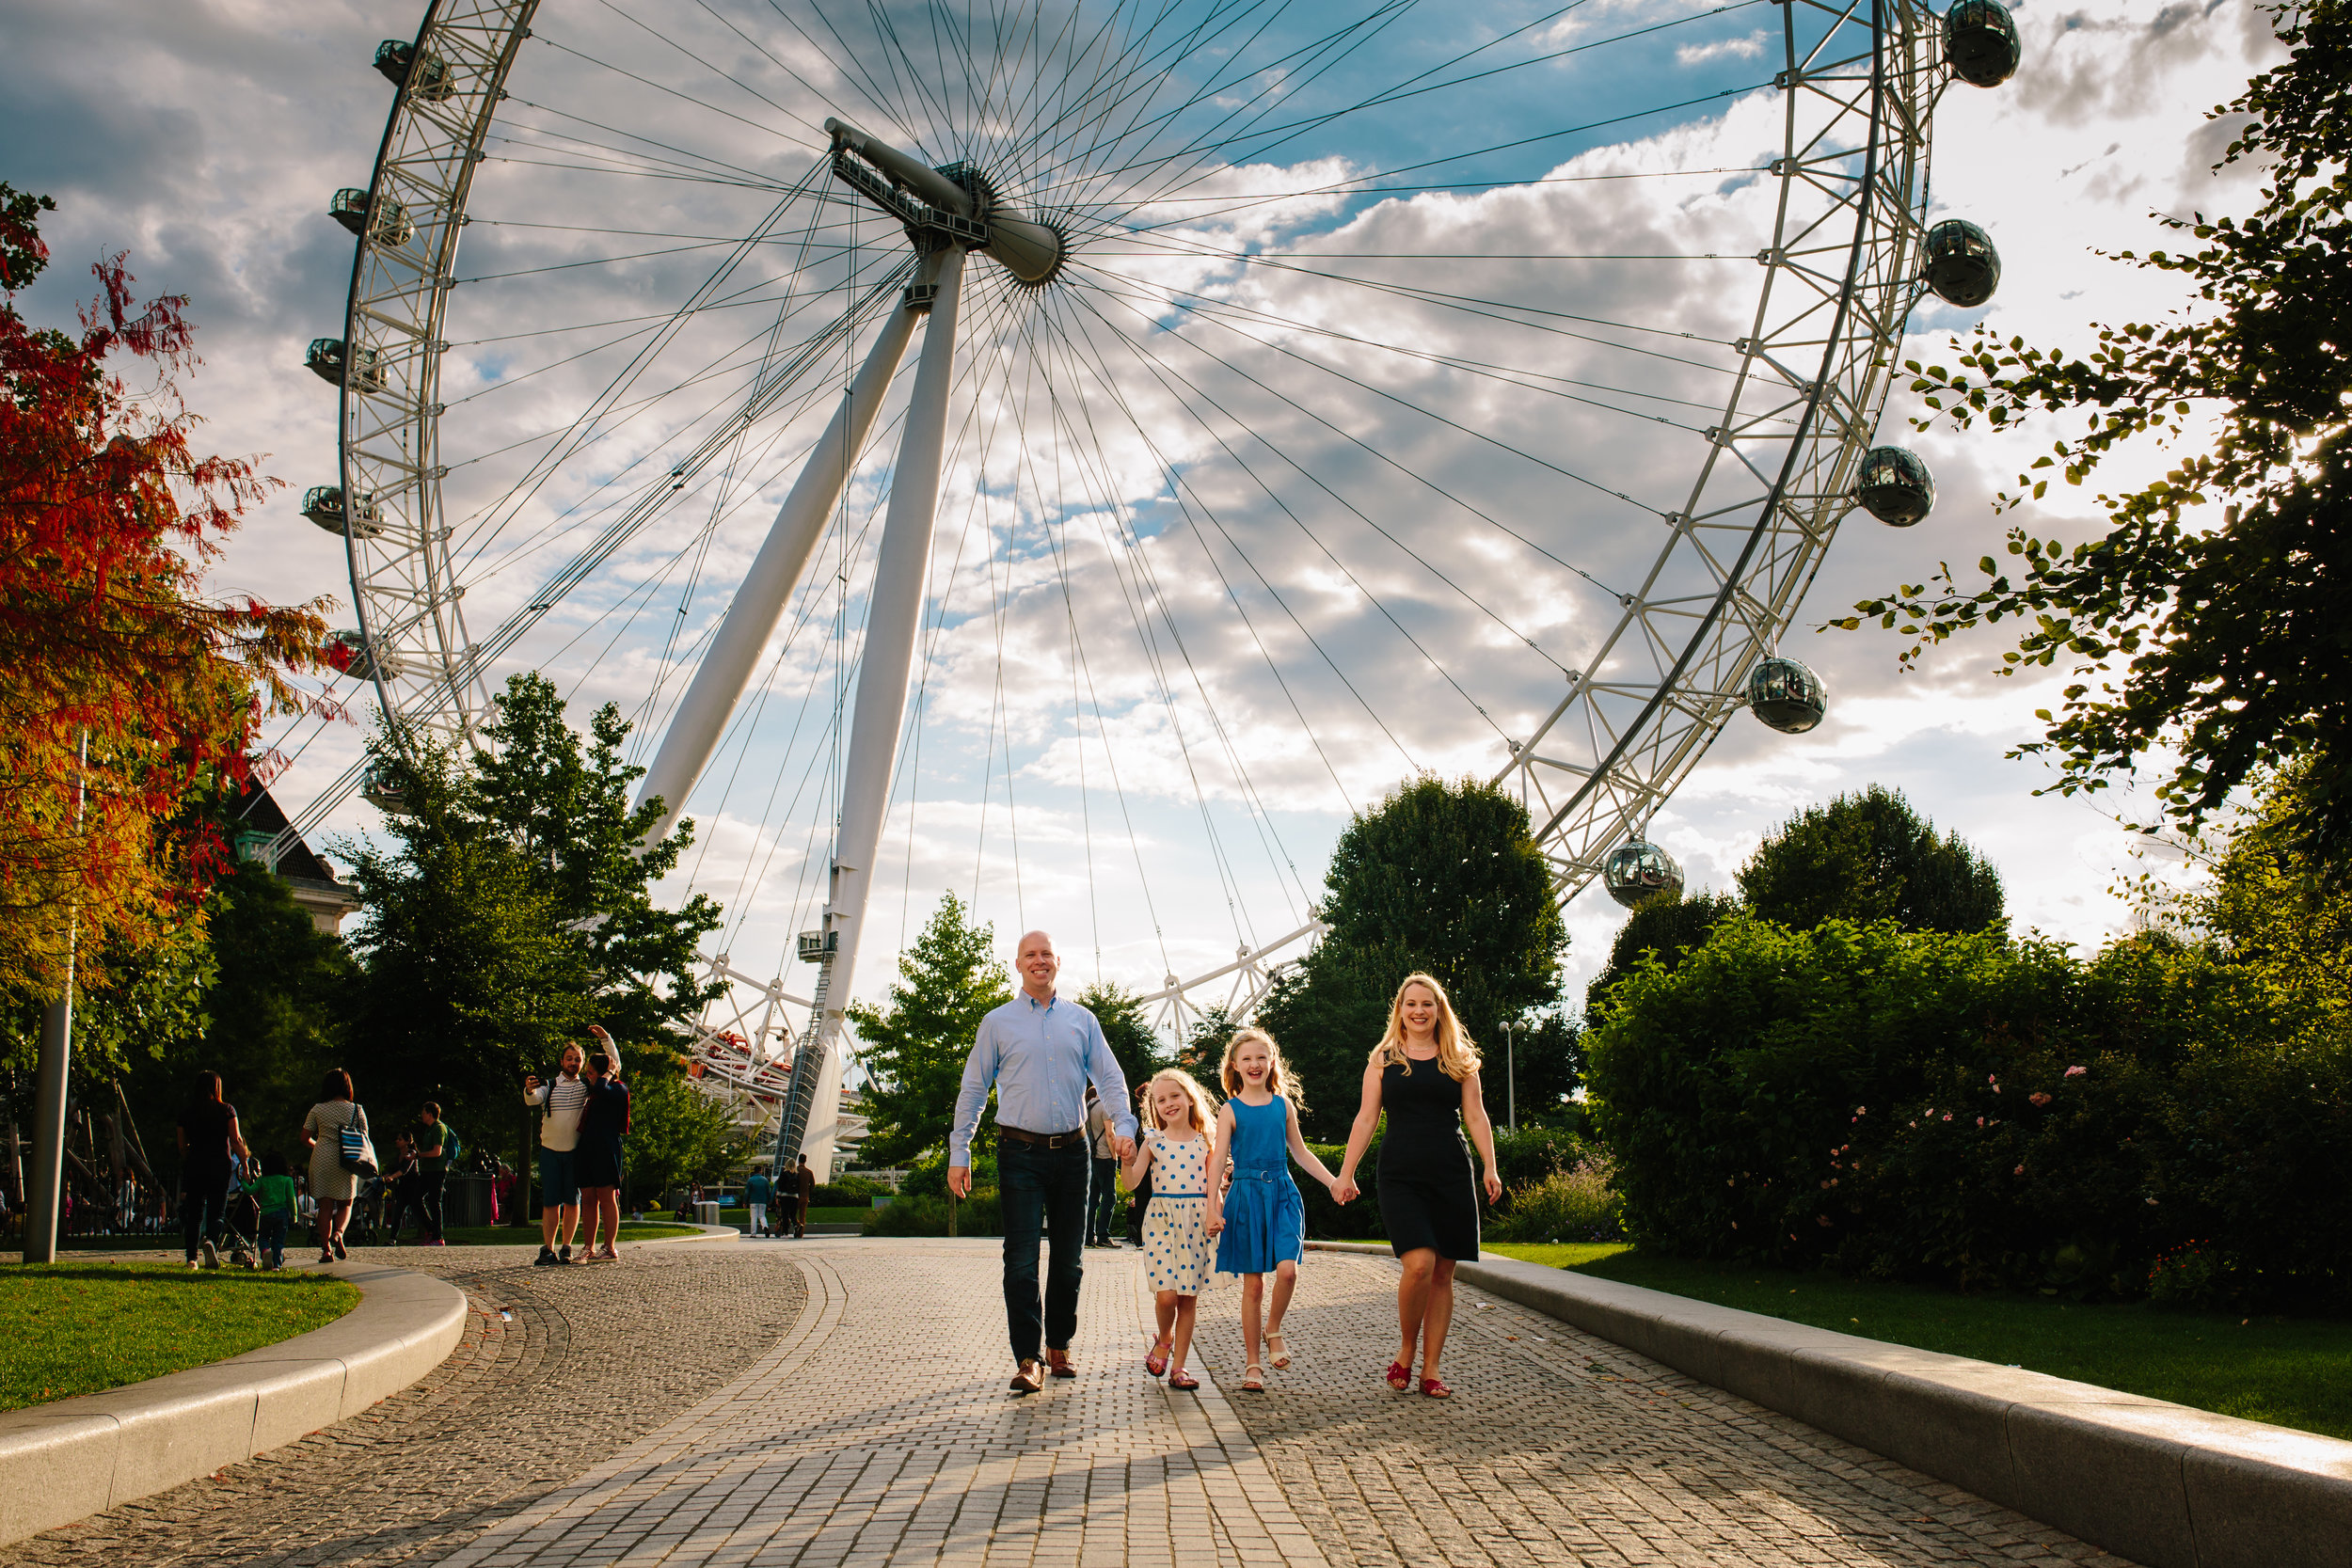 Family photoshoot near the London Eye